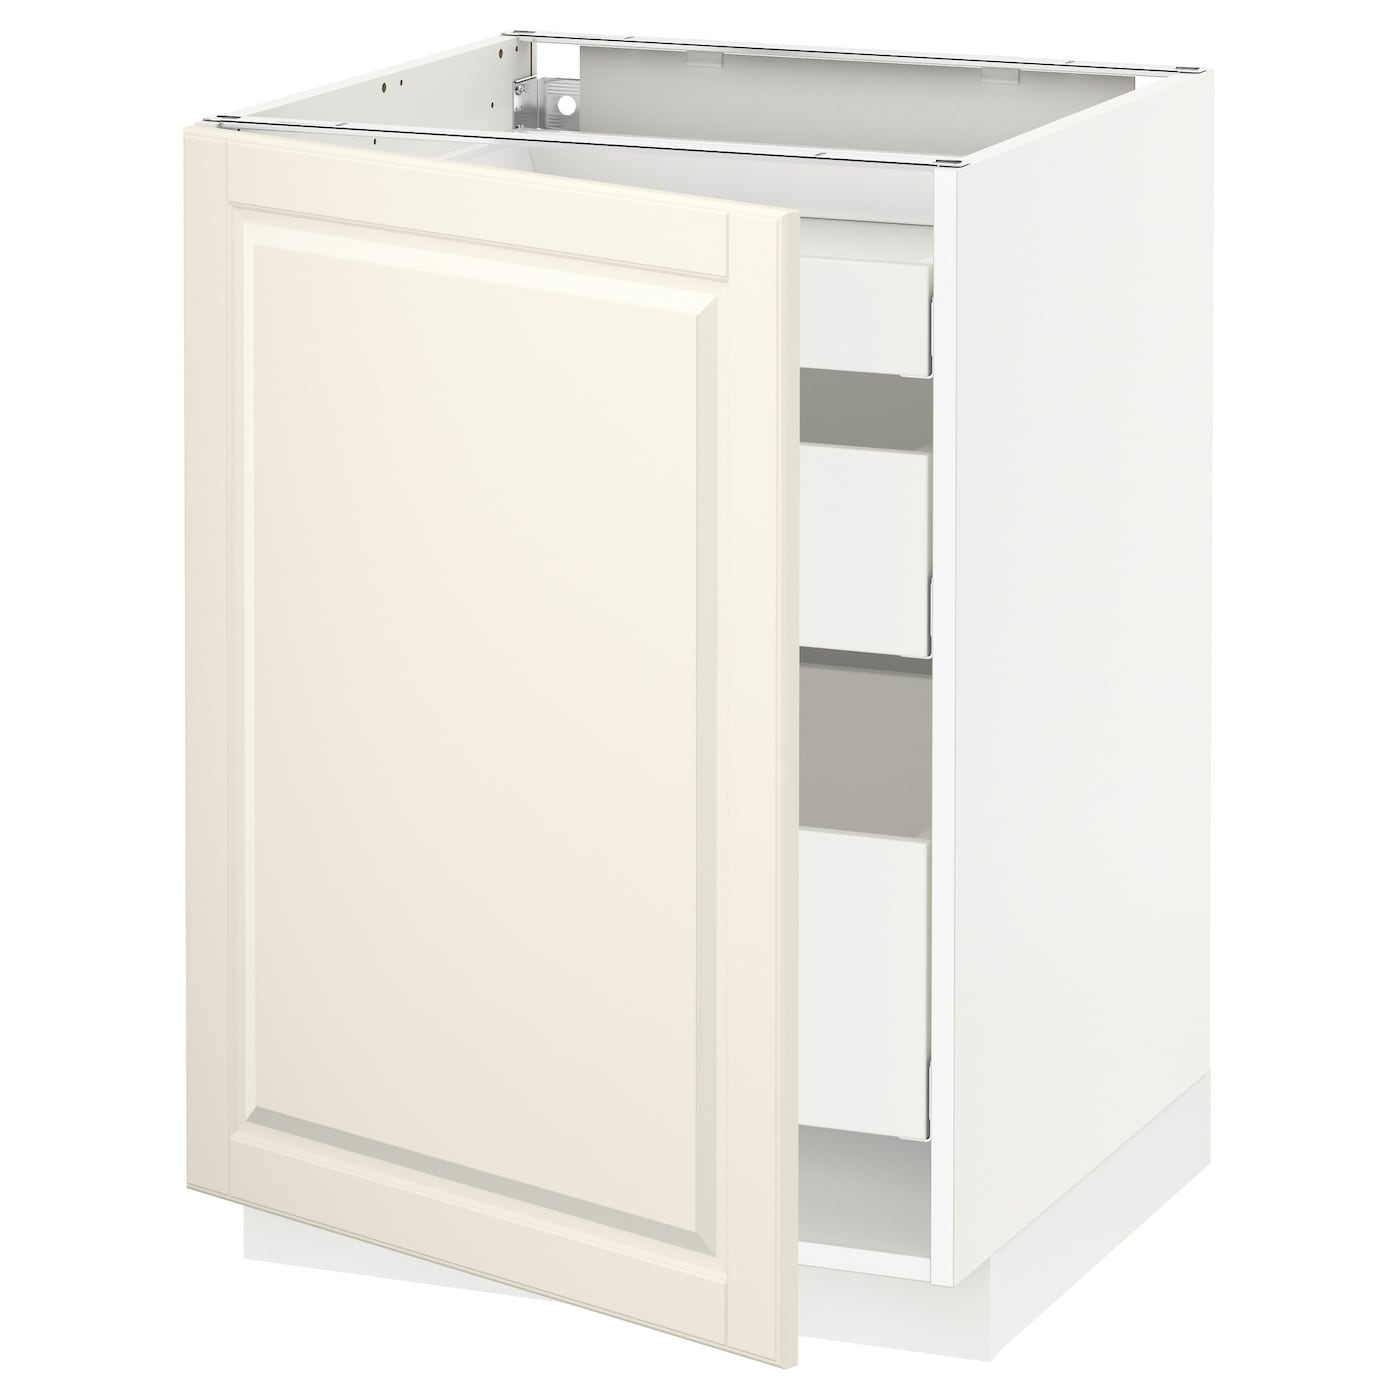 IKEA METOD/MAXIMERA base cabinet with 1 door/3 drawers Smooth-running drawers with stop.